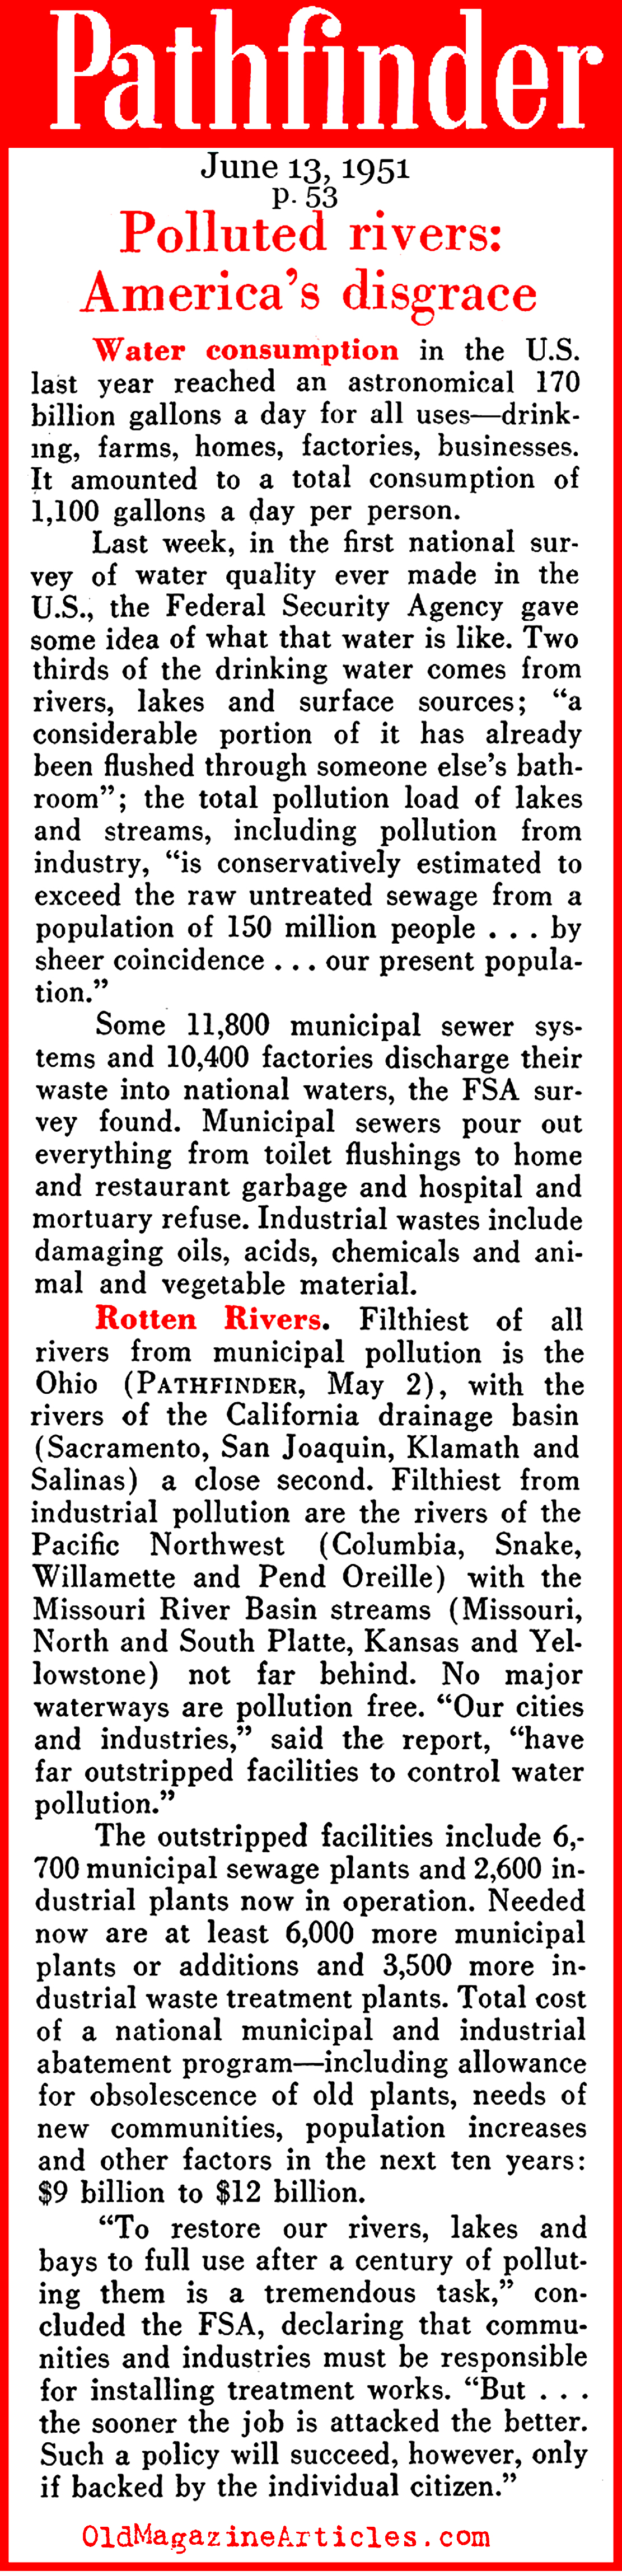 America's Disgrace: Polluted Rivers (Pathfinder Magazine, 1951)